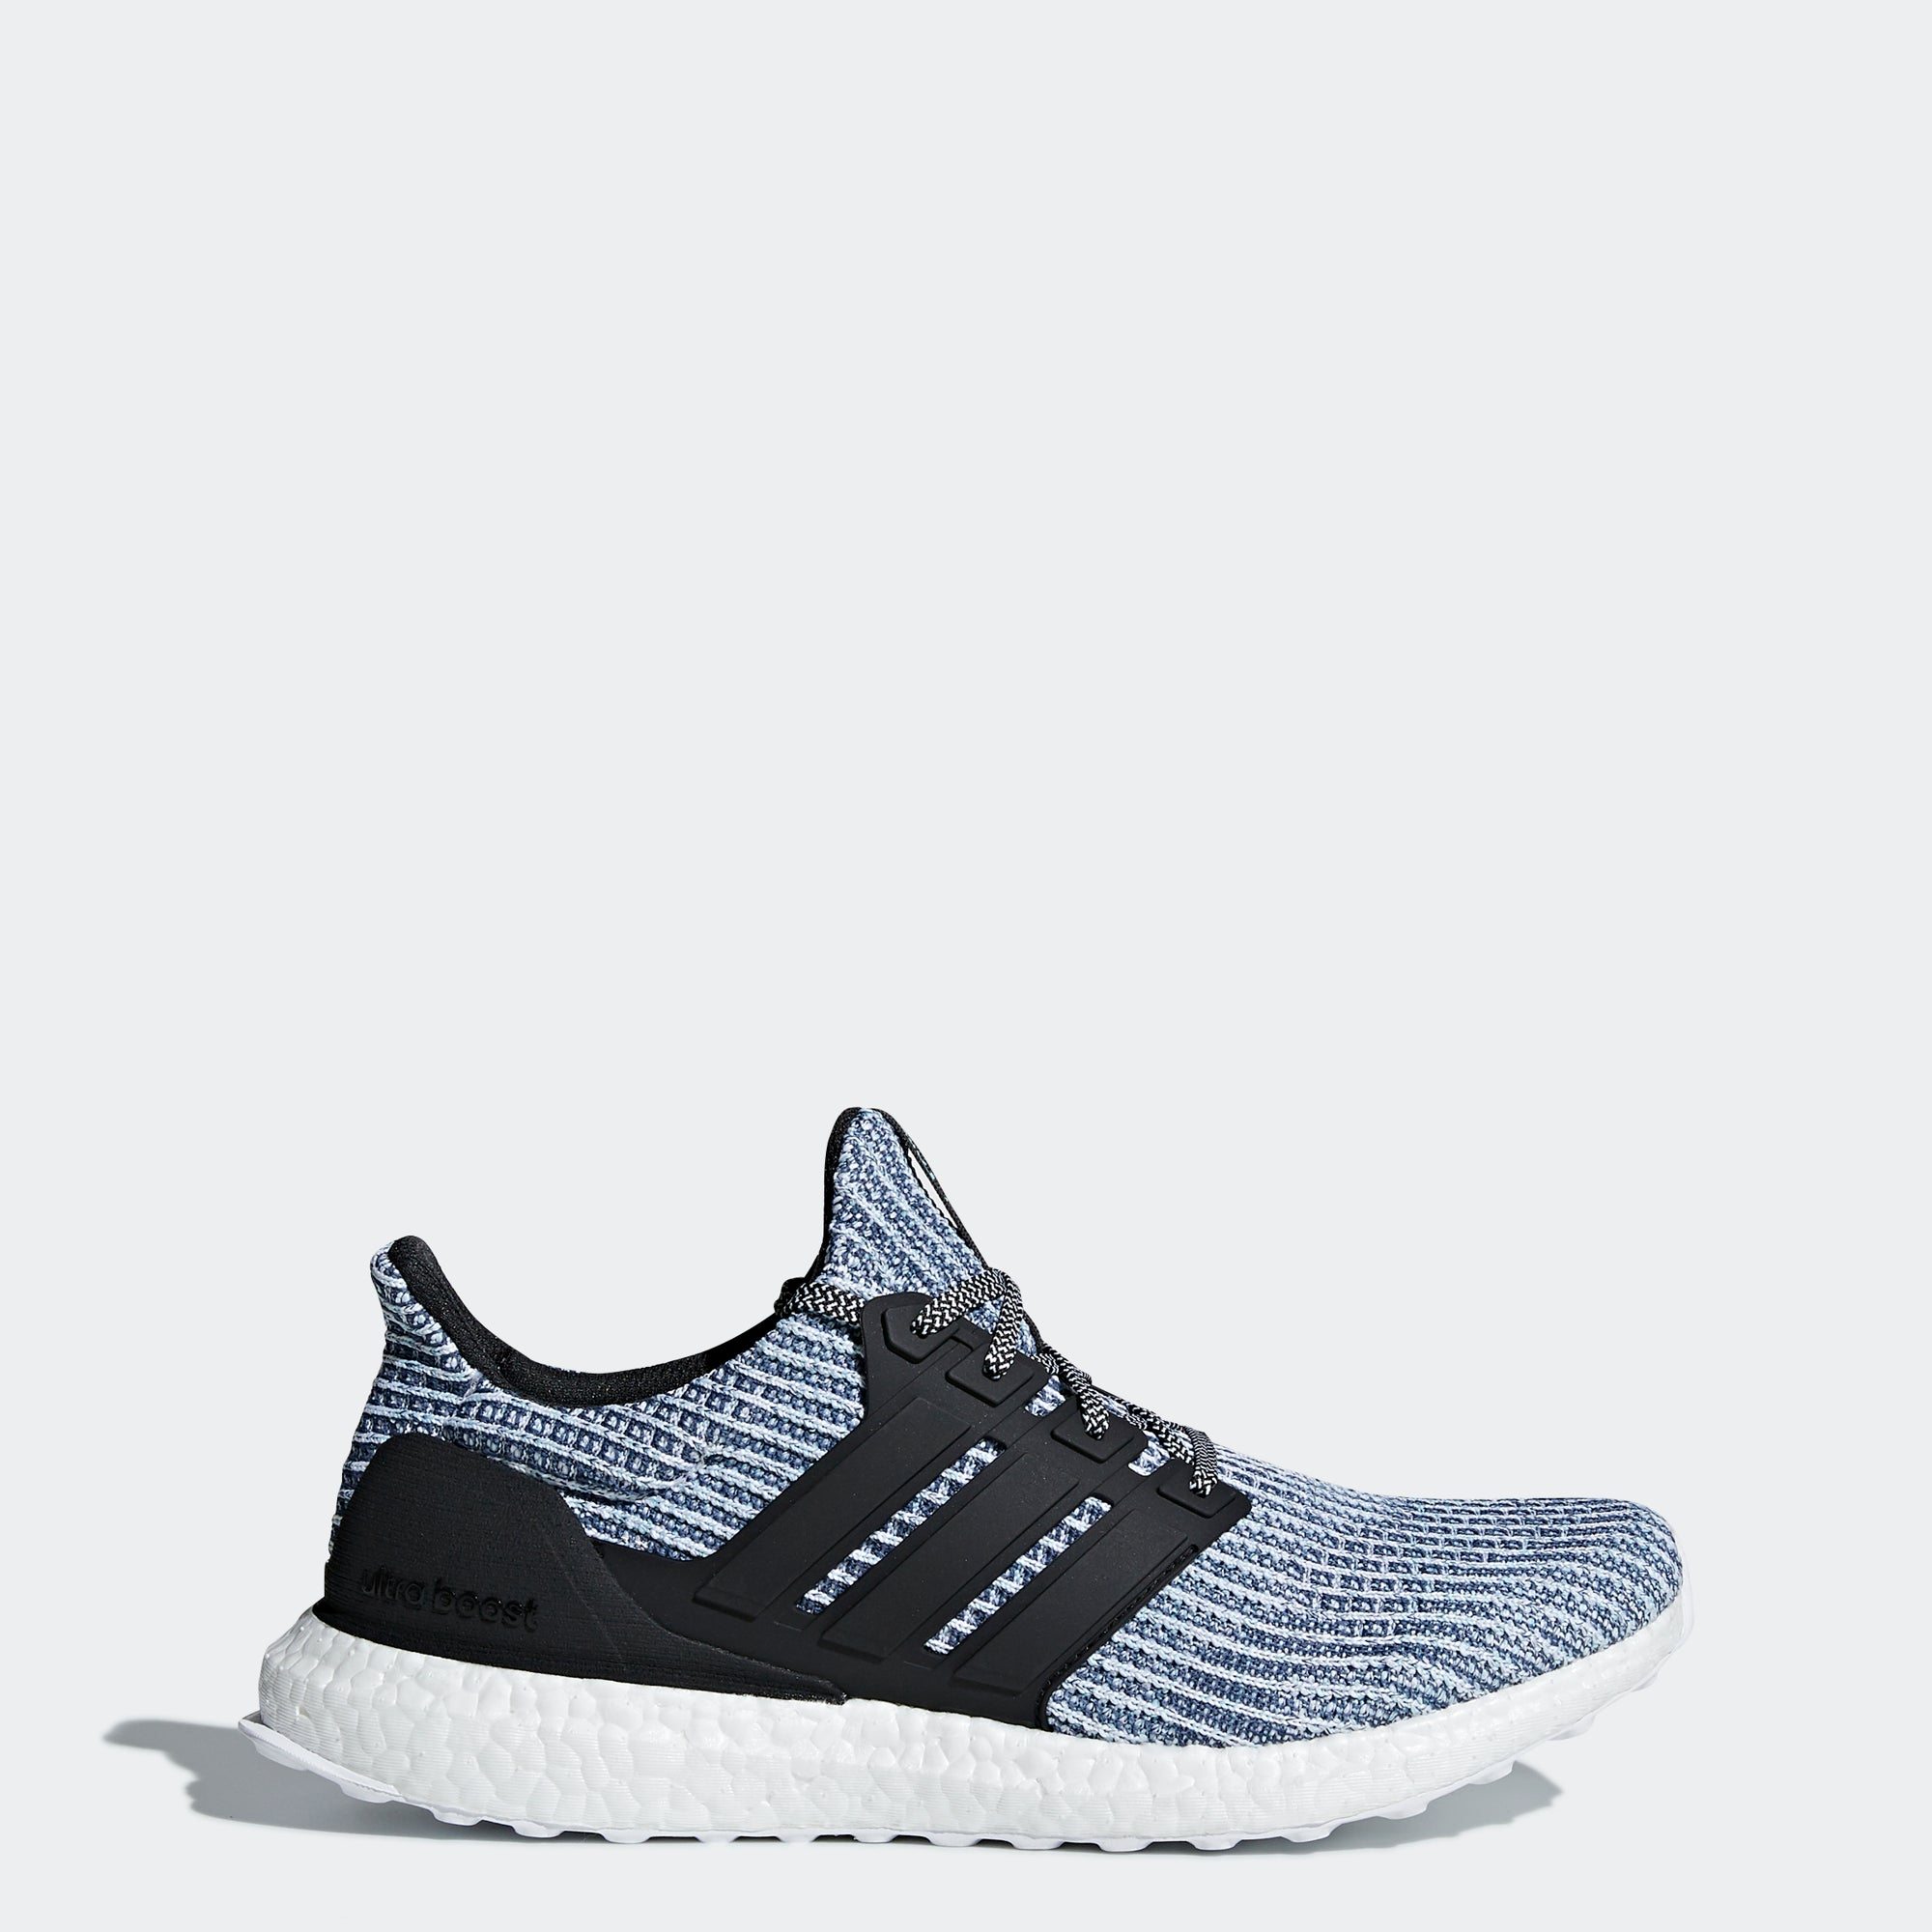 bfd1a75540286 Men s adidas Running Ultraboost Parley Shoes Blue Spirit